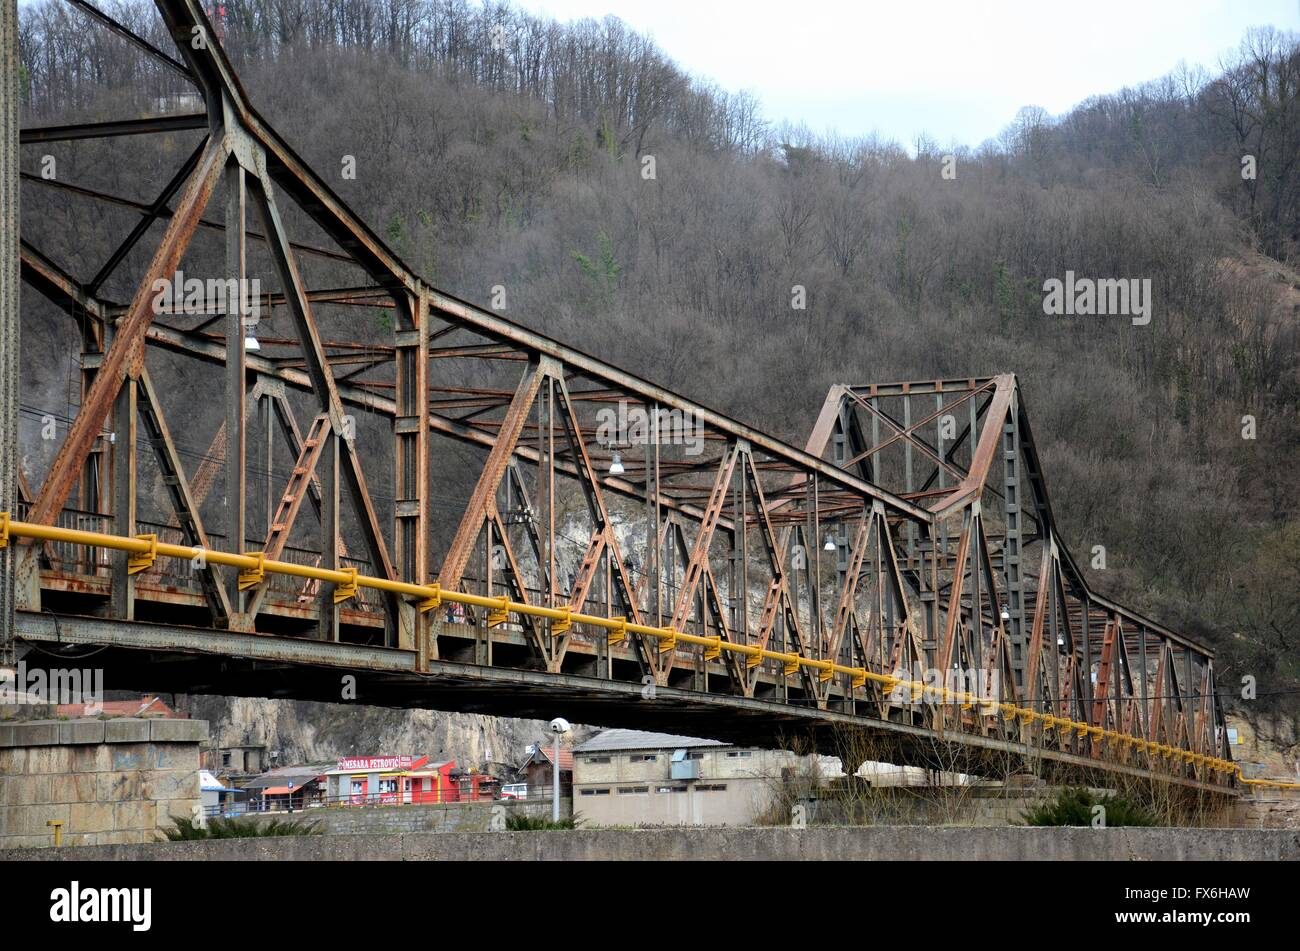 Old Yugoslav rusty metal bridge across river with yellow pipe to town Bosnia Hercegovina - Stock Image